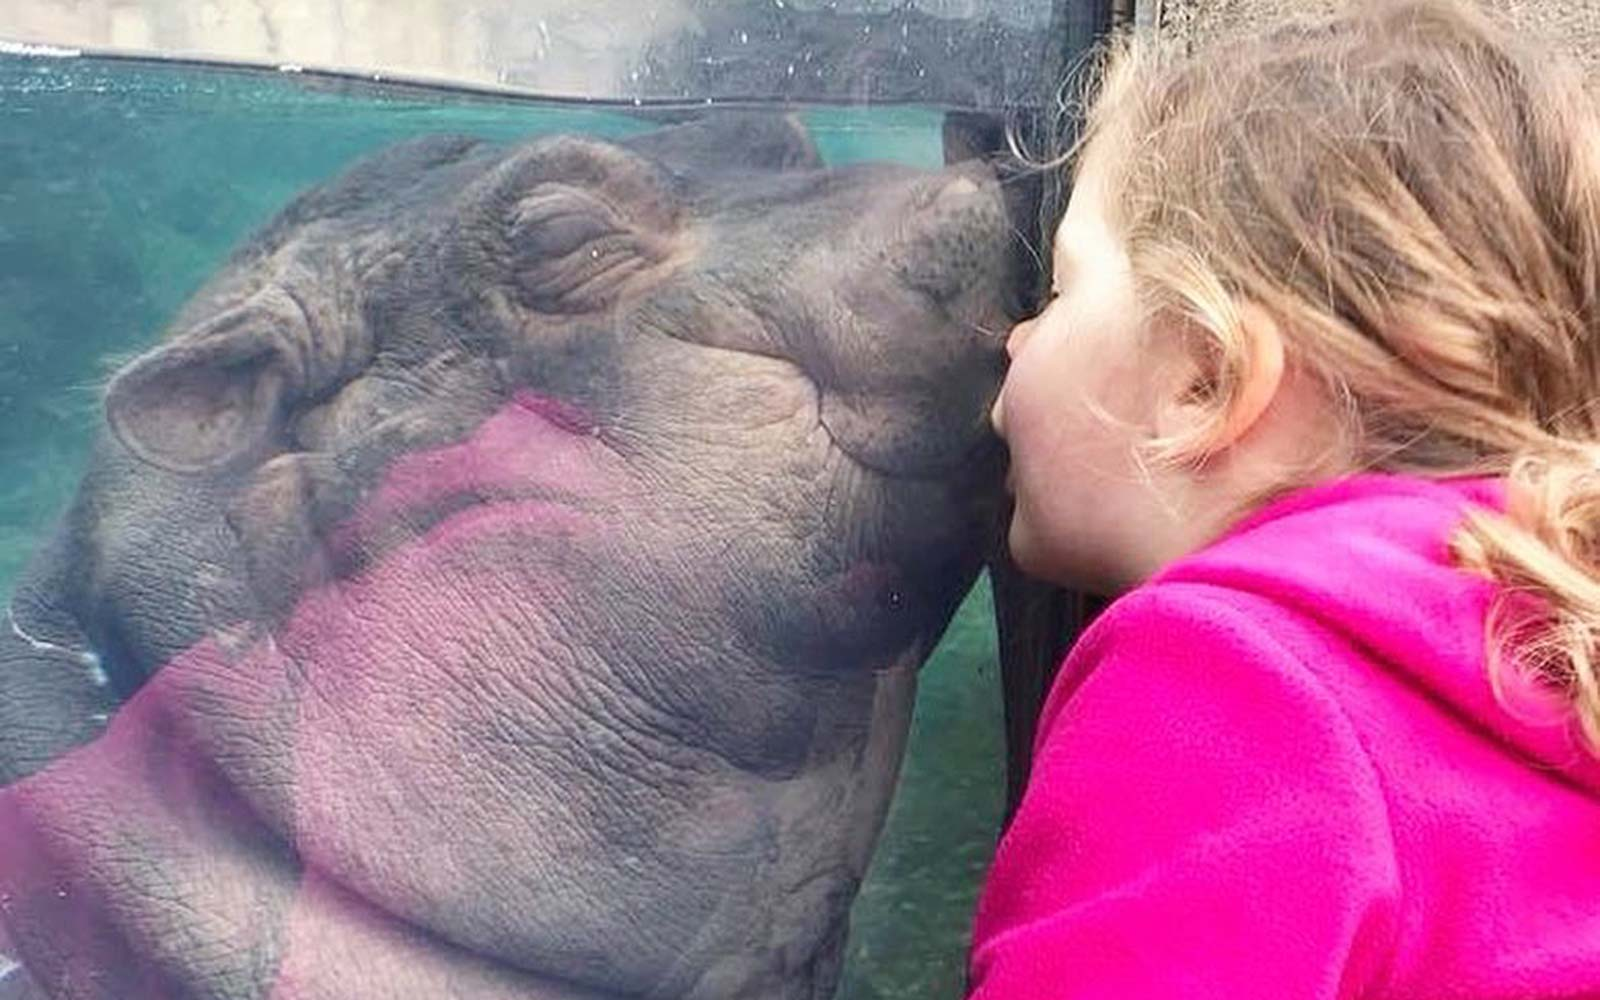 Fiona the Hippo Kissing a Little Girl Is the Cutest Thing You'll See Today